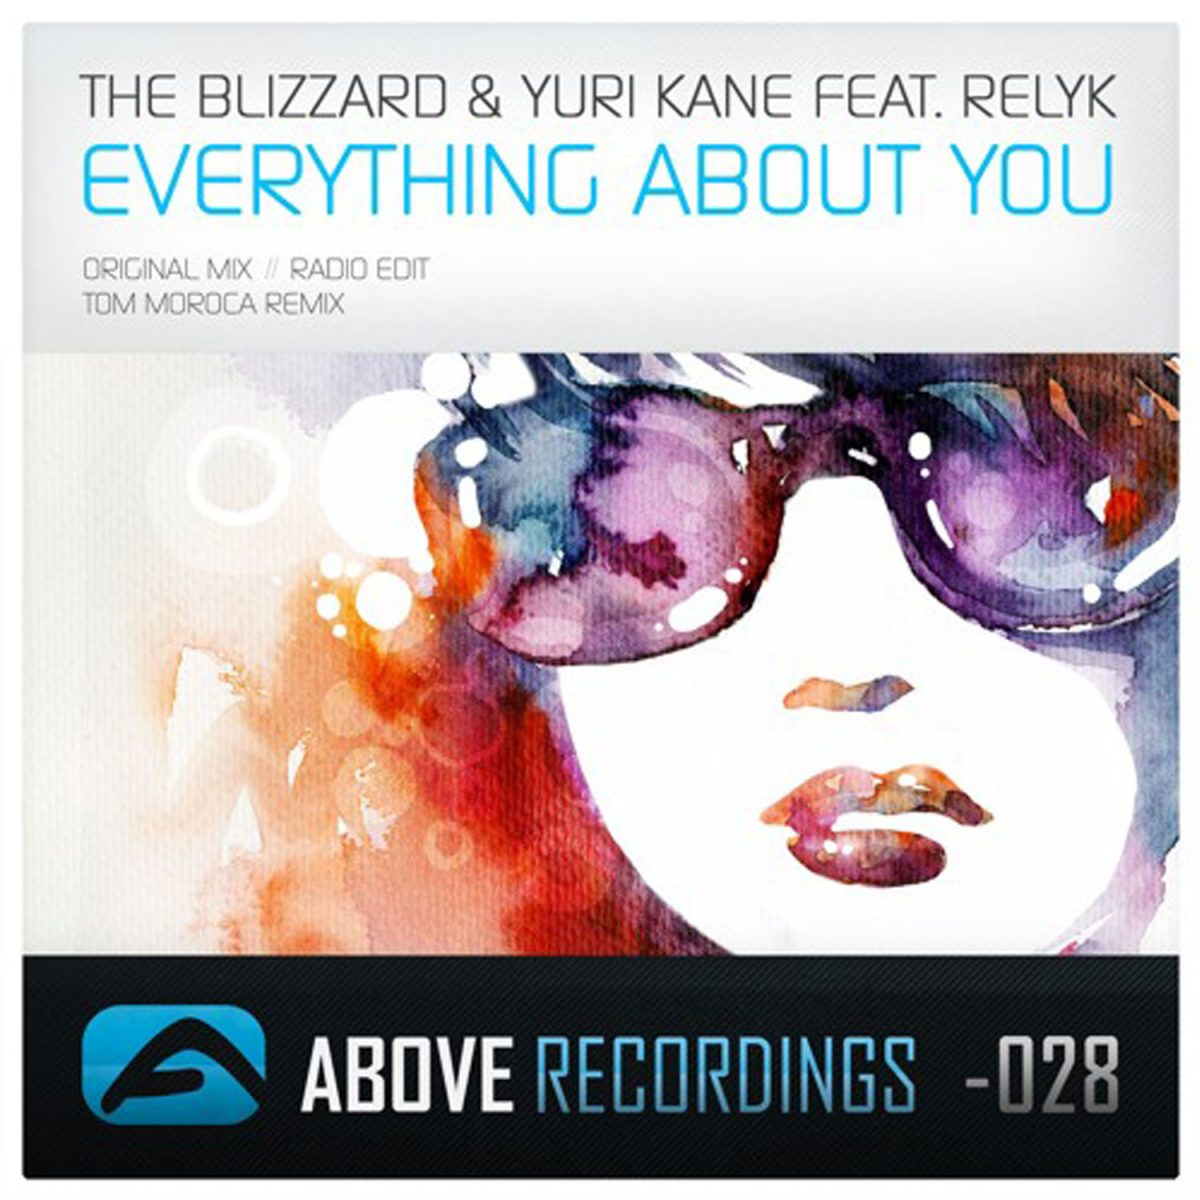 The Blizzard & Yuri Kane feat. Relyk Everything About You